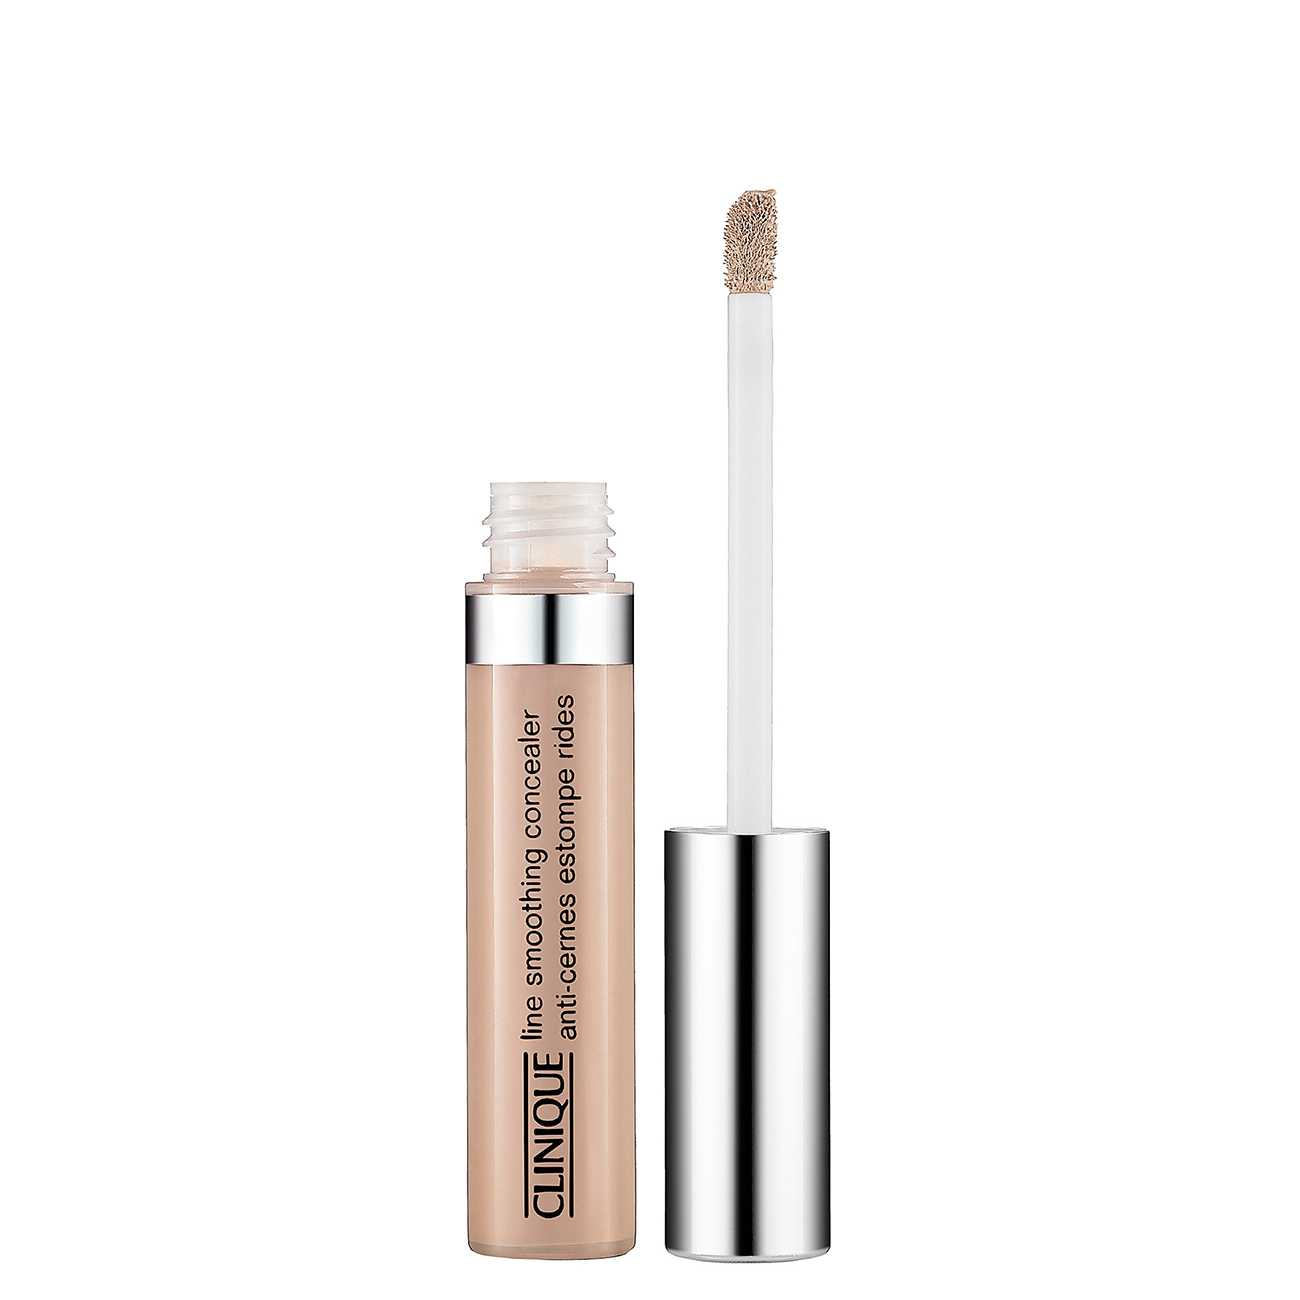 Line Smoothing Concealer 8 Ml Moderately Fair 3 Clinique imagine 2021 bestvalue.eu